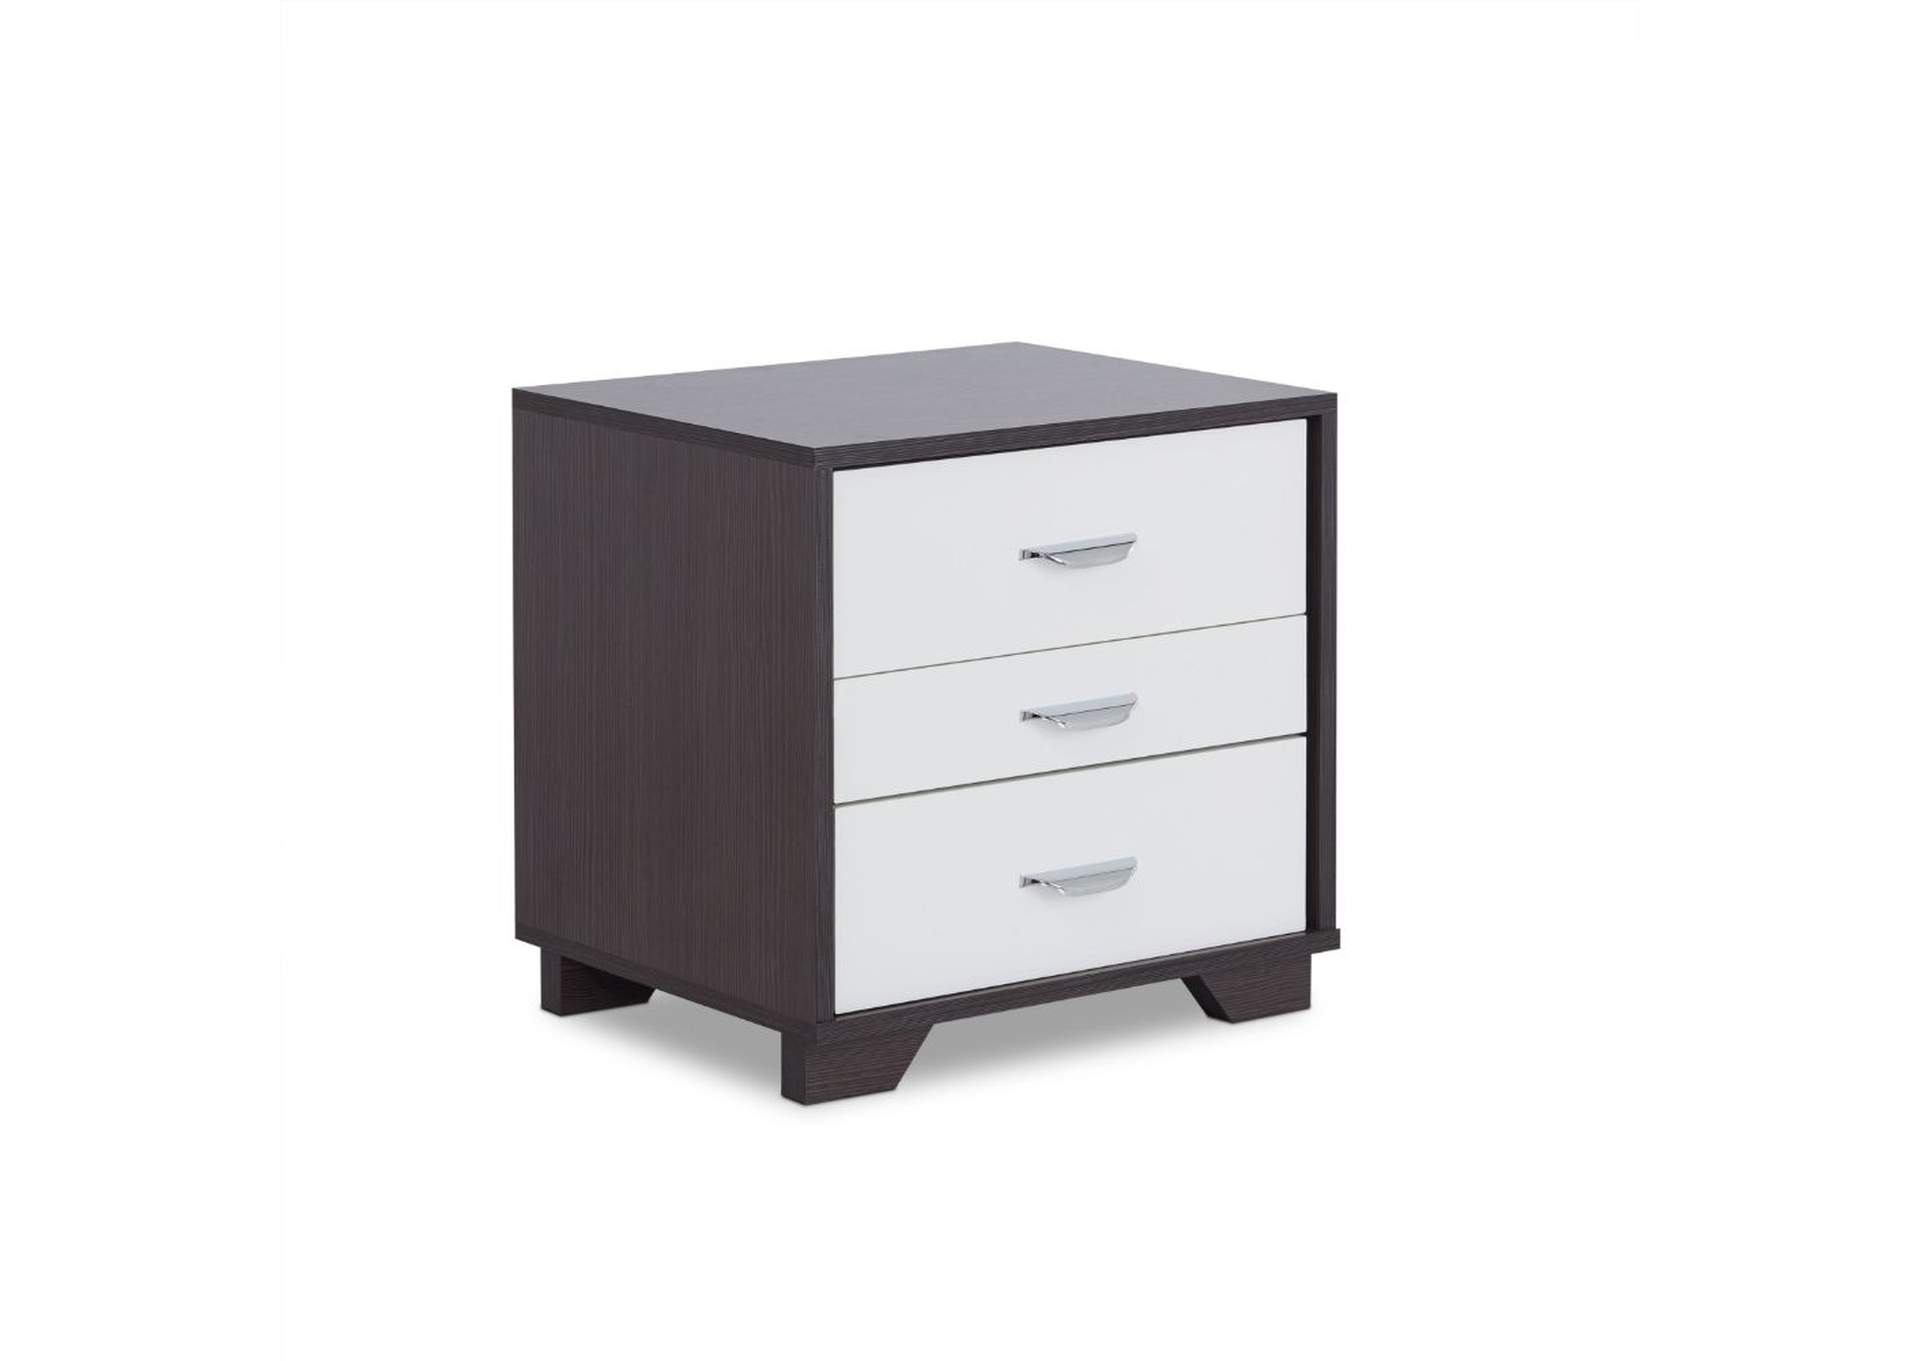 Eloy White/Black Nightstand,Acme